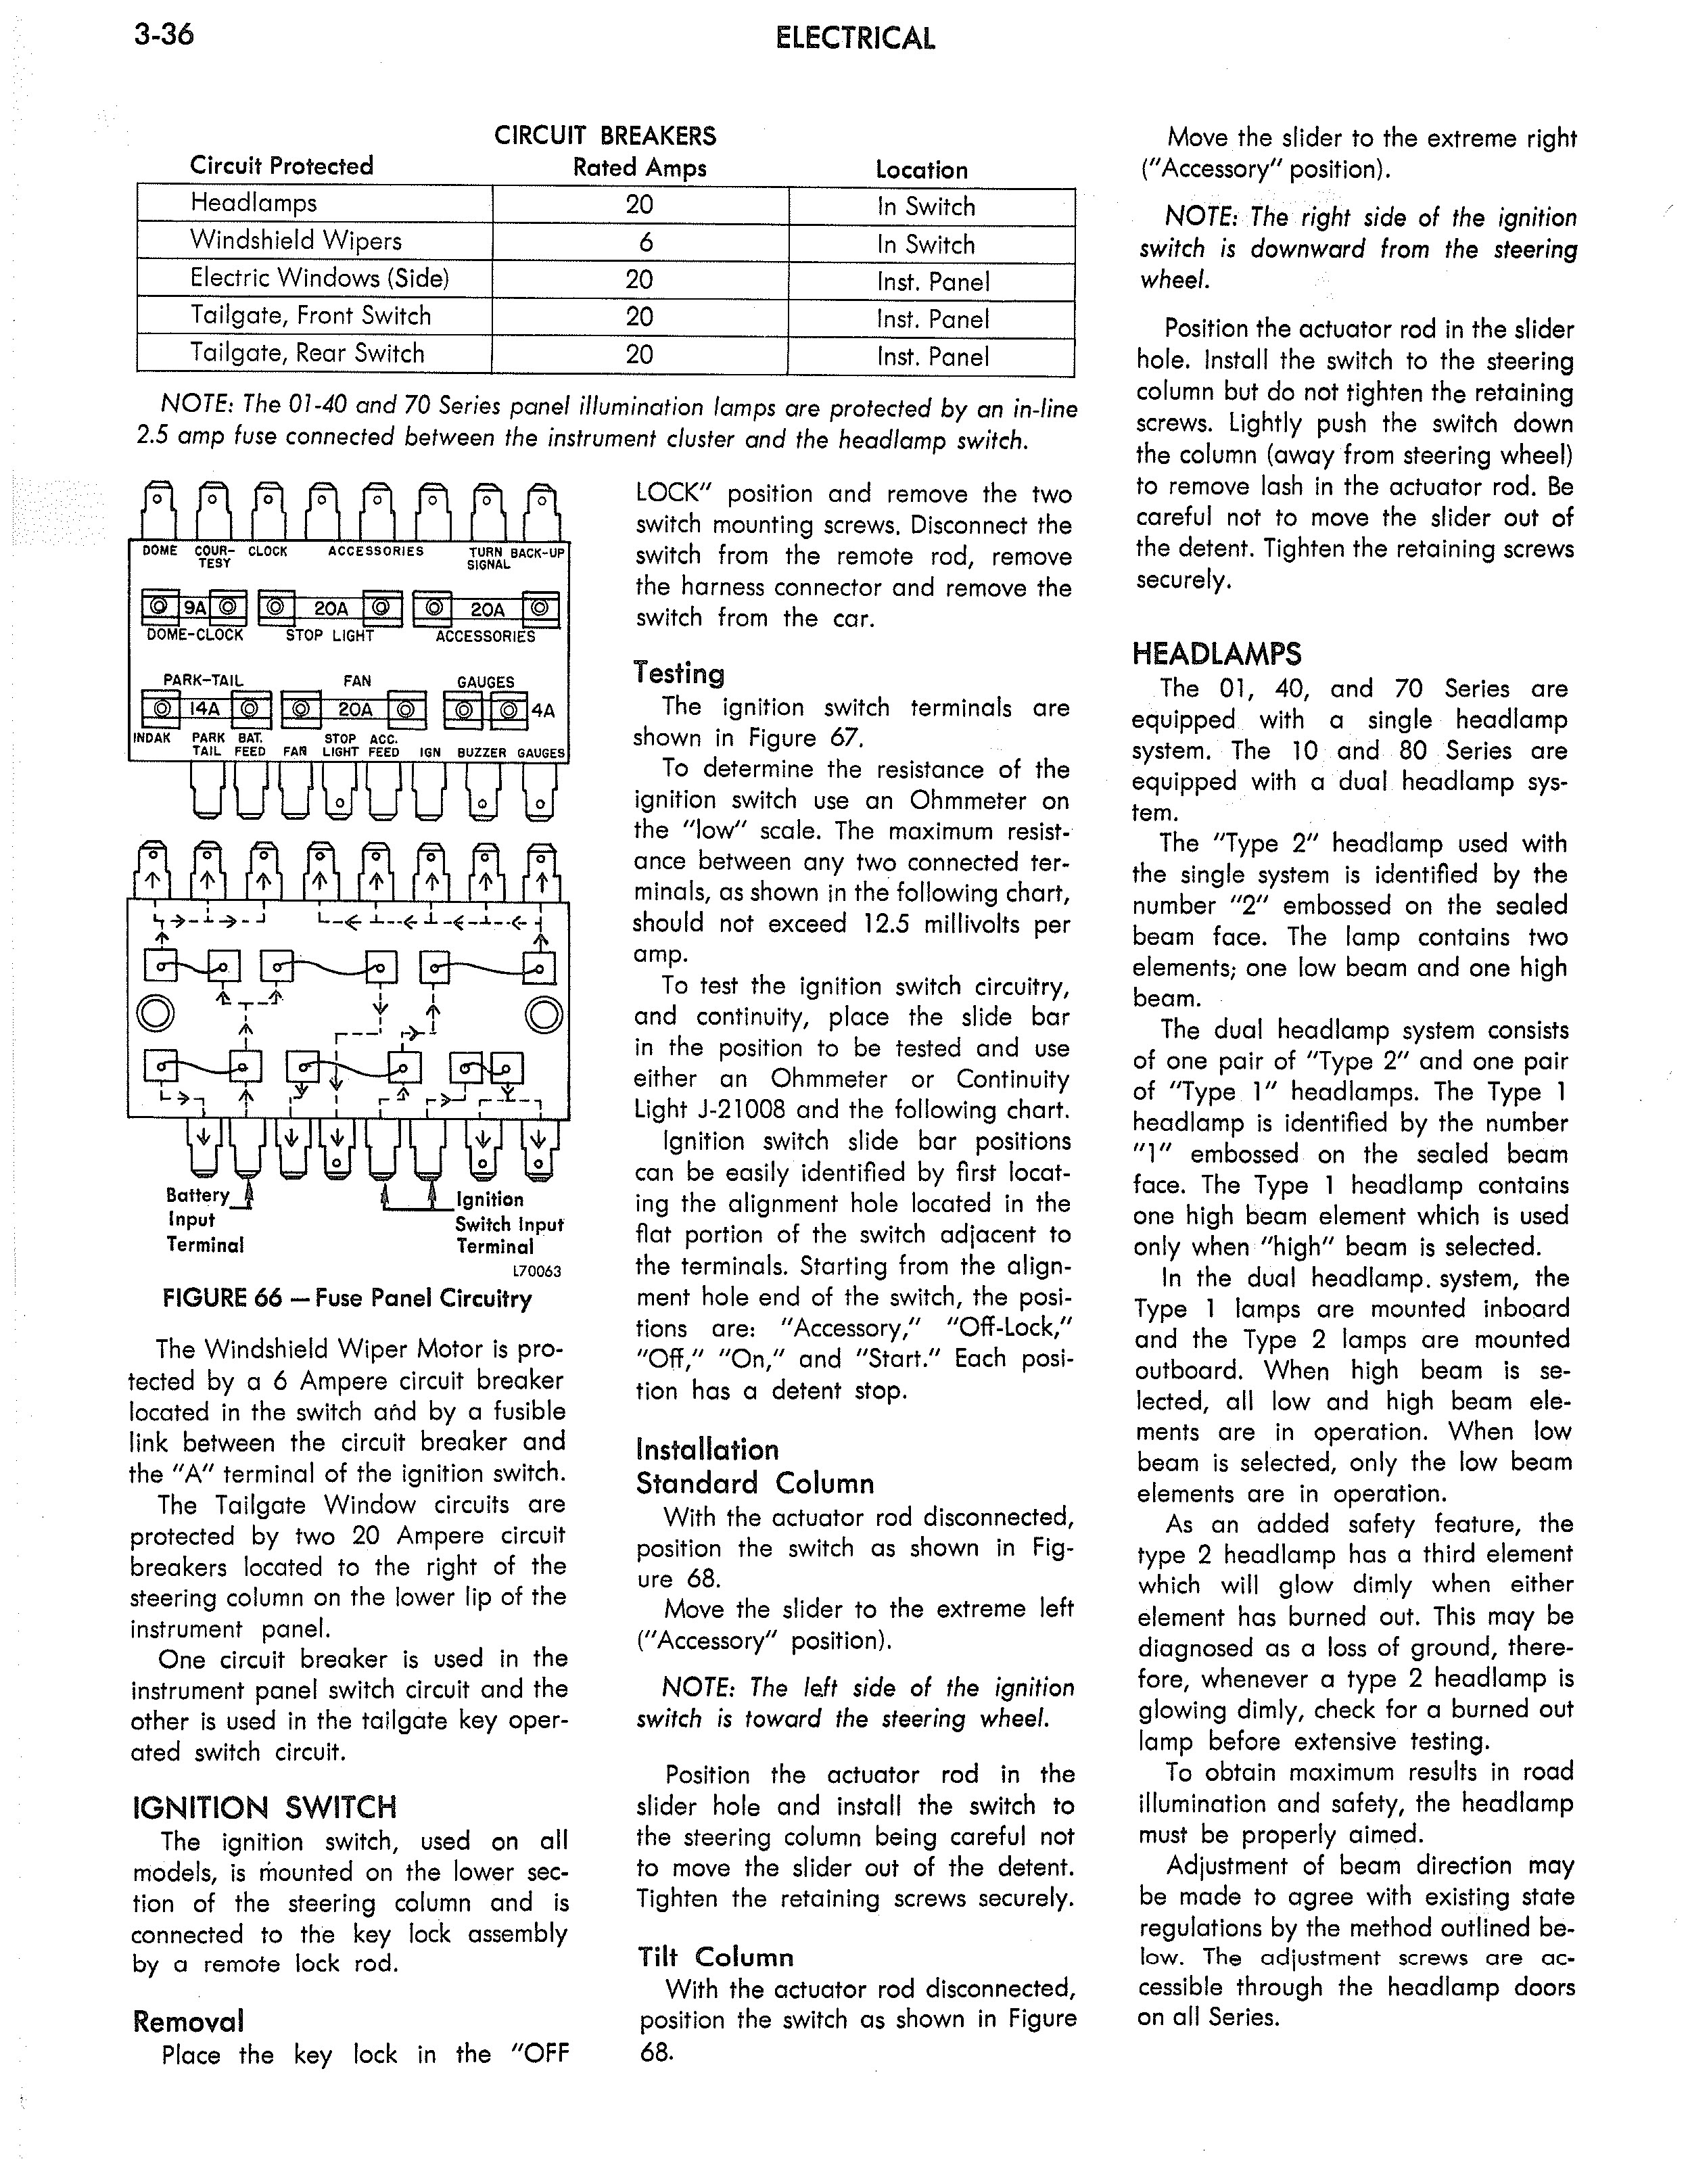 1973 AMC Technical Service Manual page 116 of 487